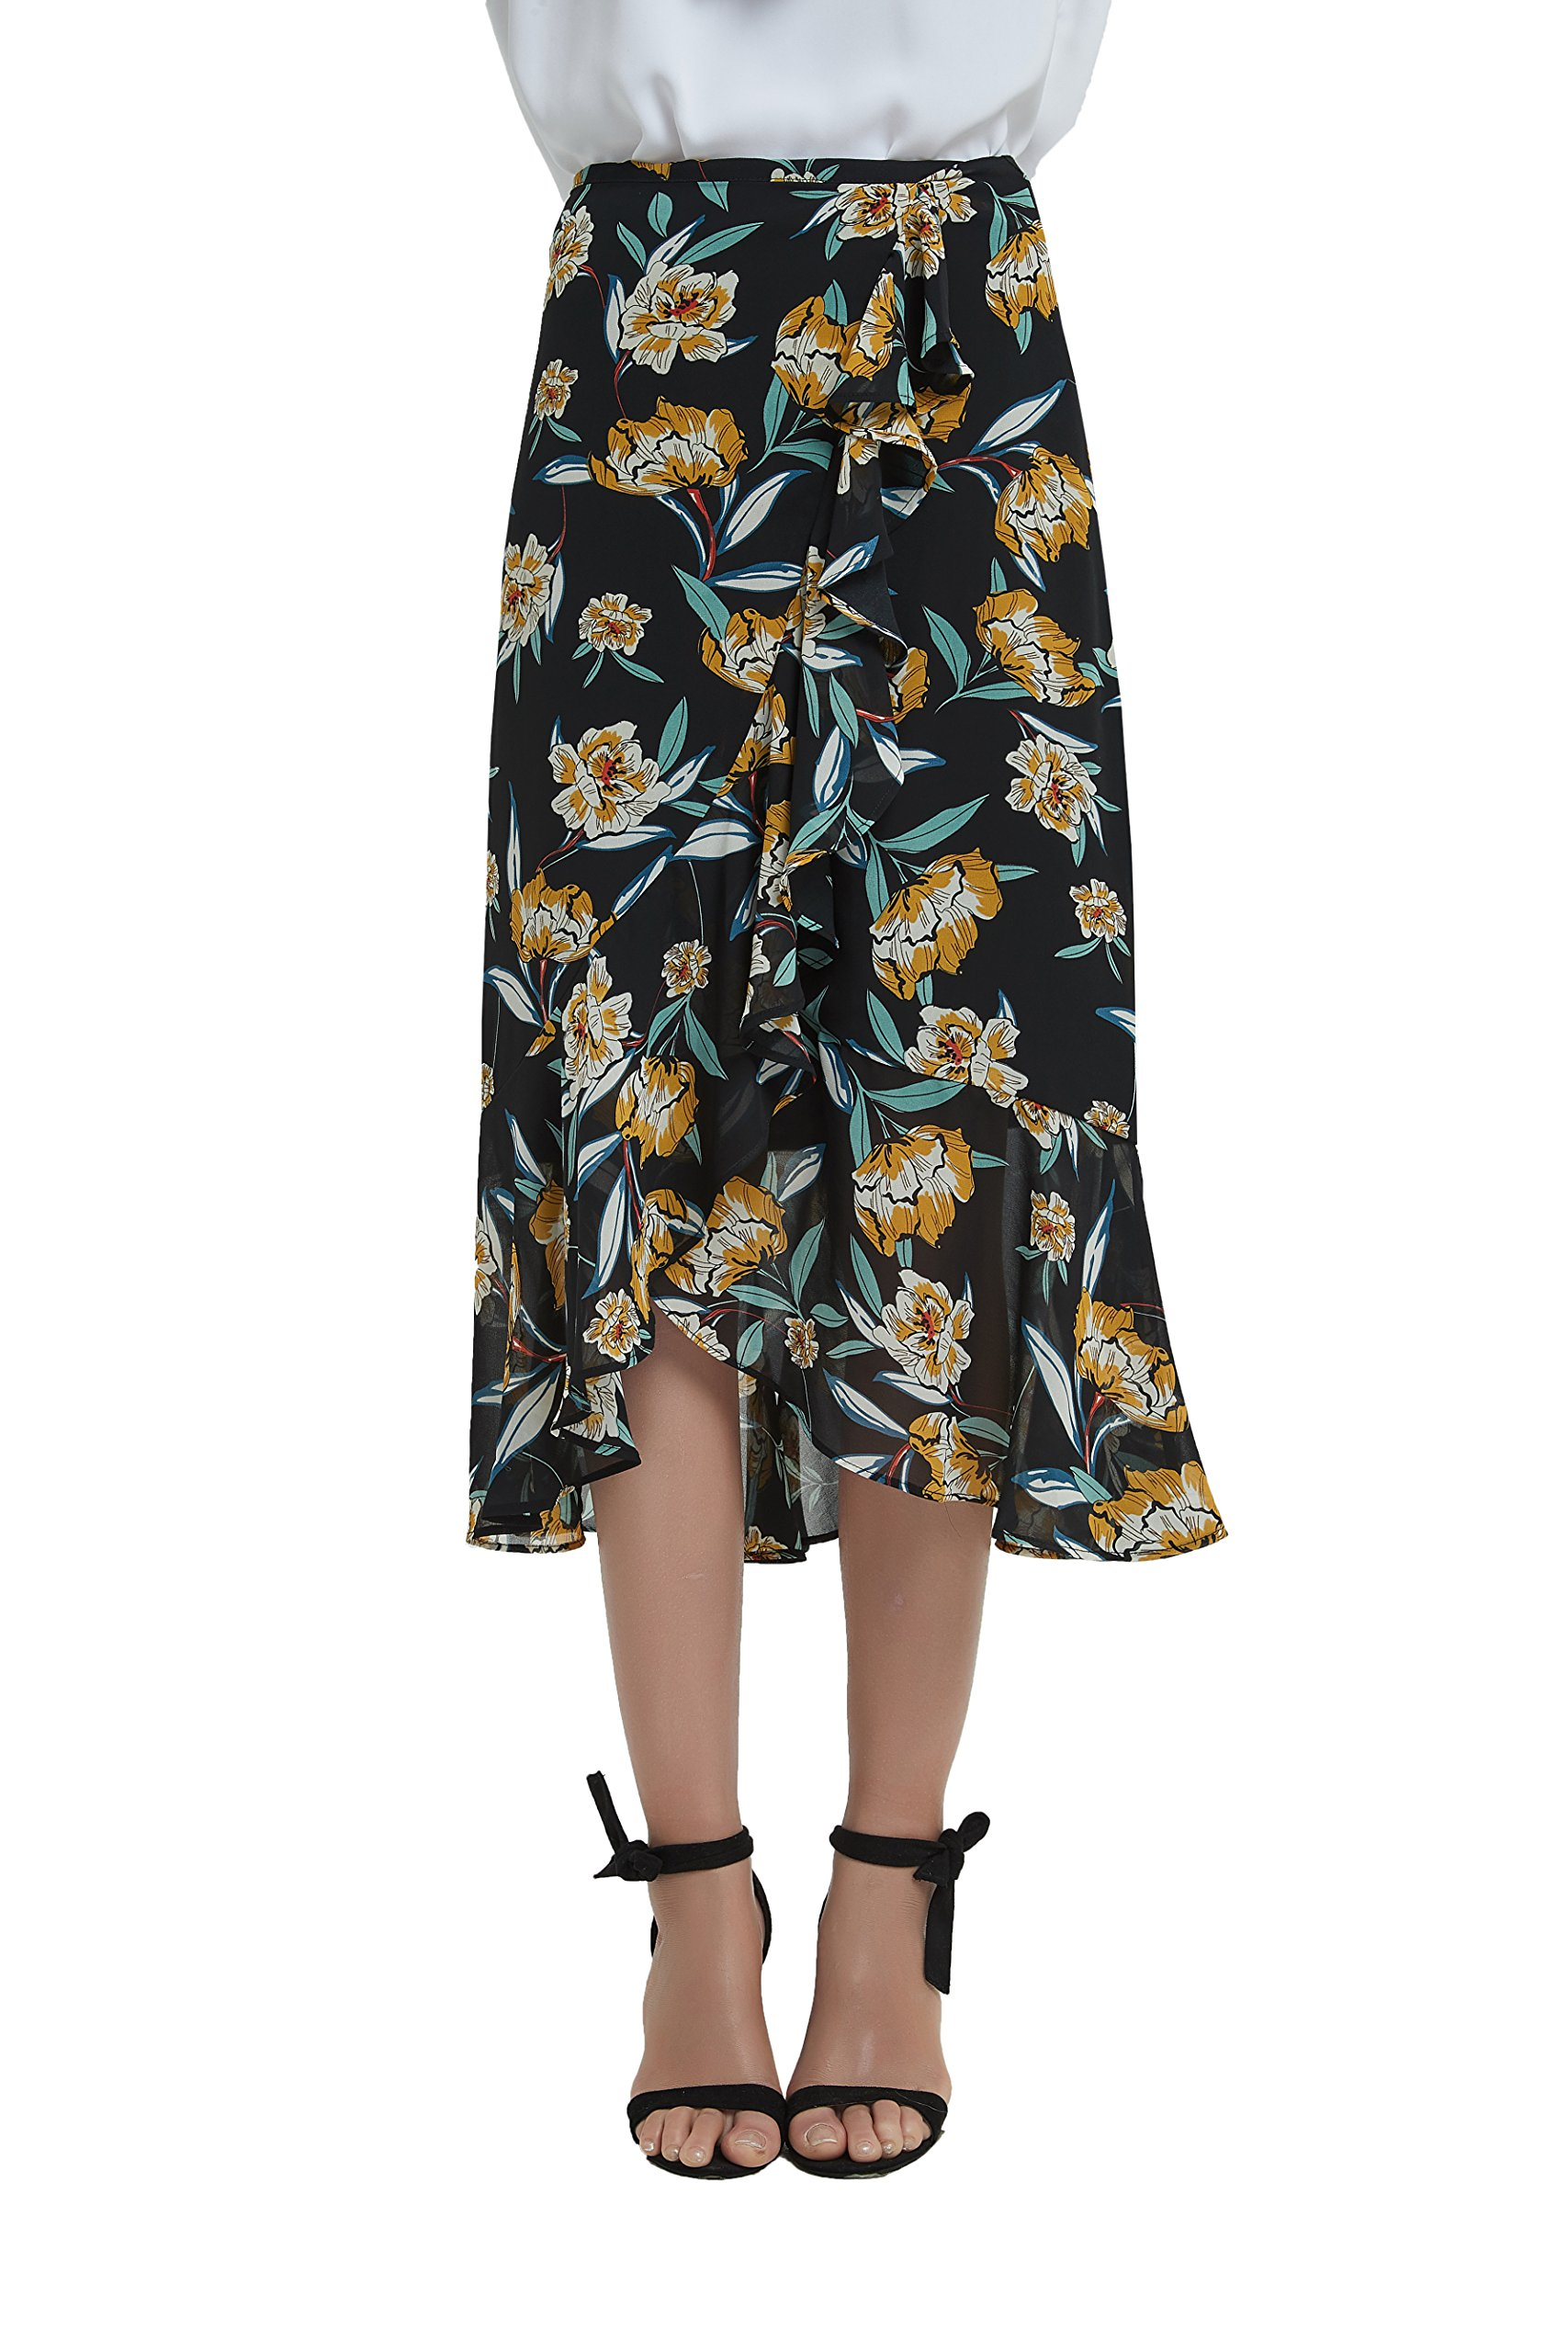 Tronjori Womens A Line Floral Print Midi Skirt with Ruffle on The Front